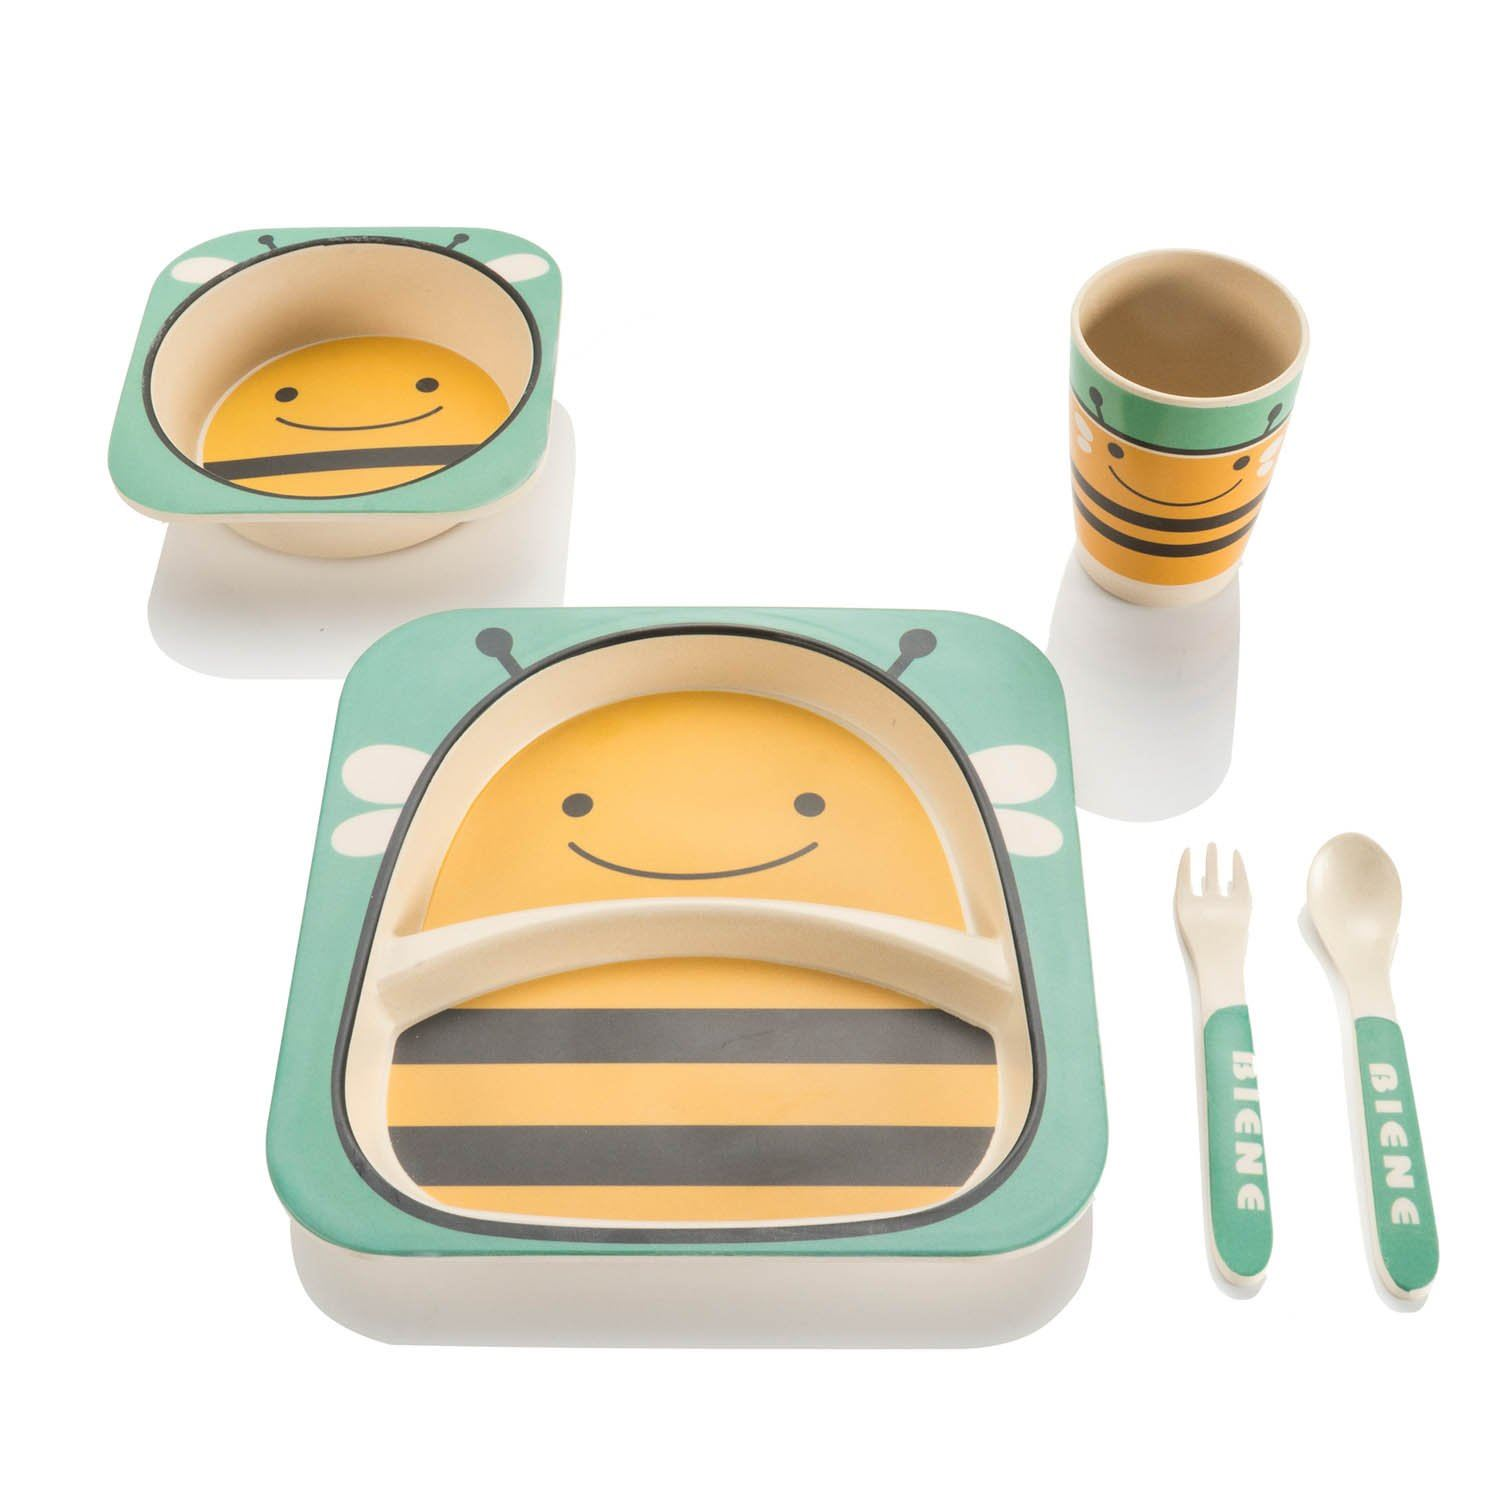 Bamboo-Kids-Meal-Set-Eco-Friendly-securite-alimentaire-alimentation-5pcs-Cuillere-Plate-Set-Toddler miniature 3